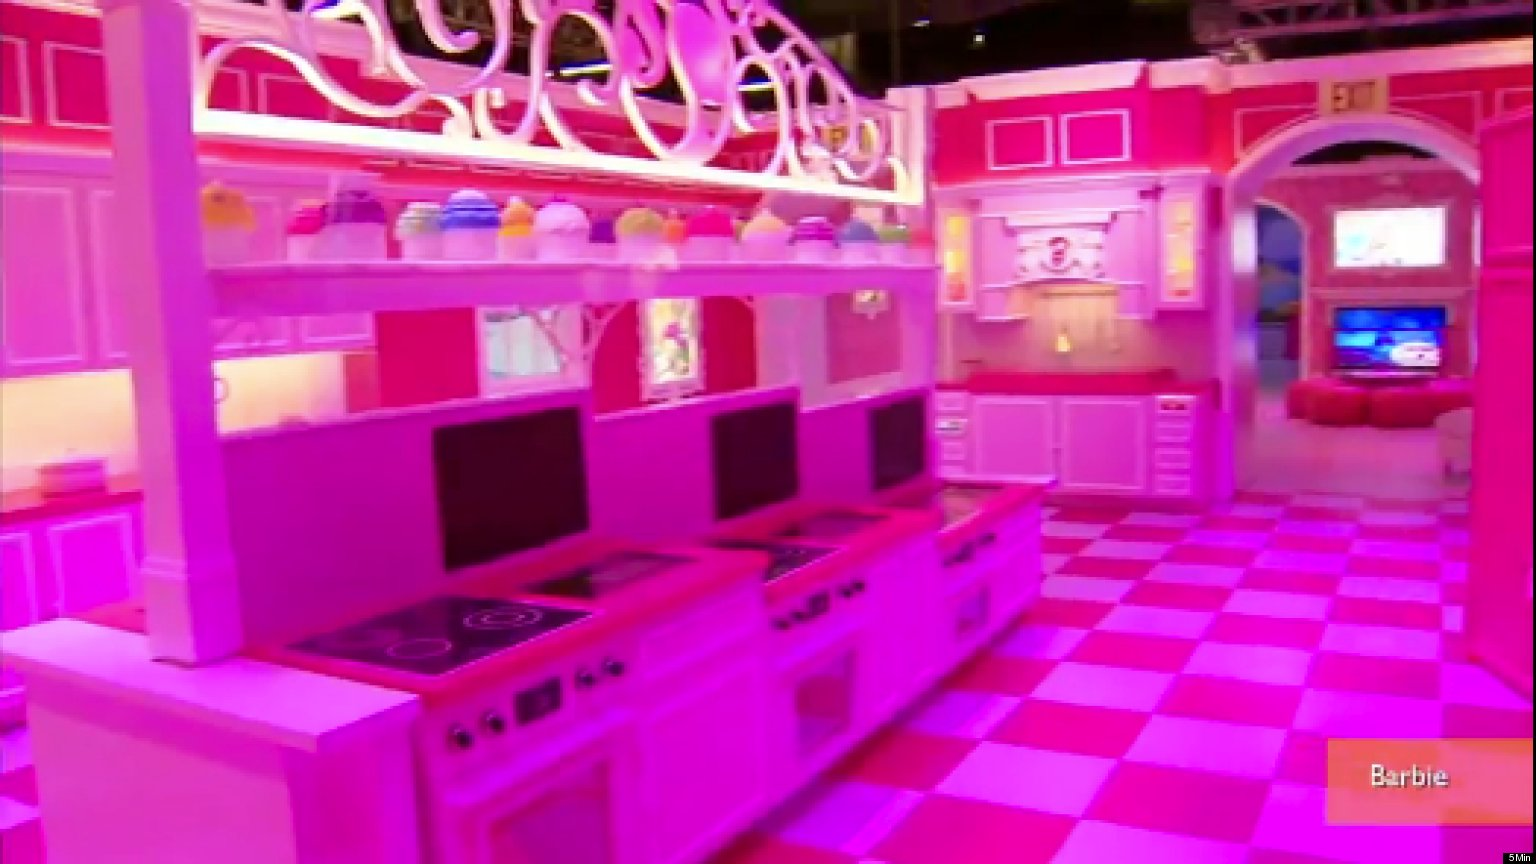 10 awesome barbie doll house models - Barbie Dream House Experience Opens At Sunrise Sawgrass Mills Video Huffpost